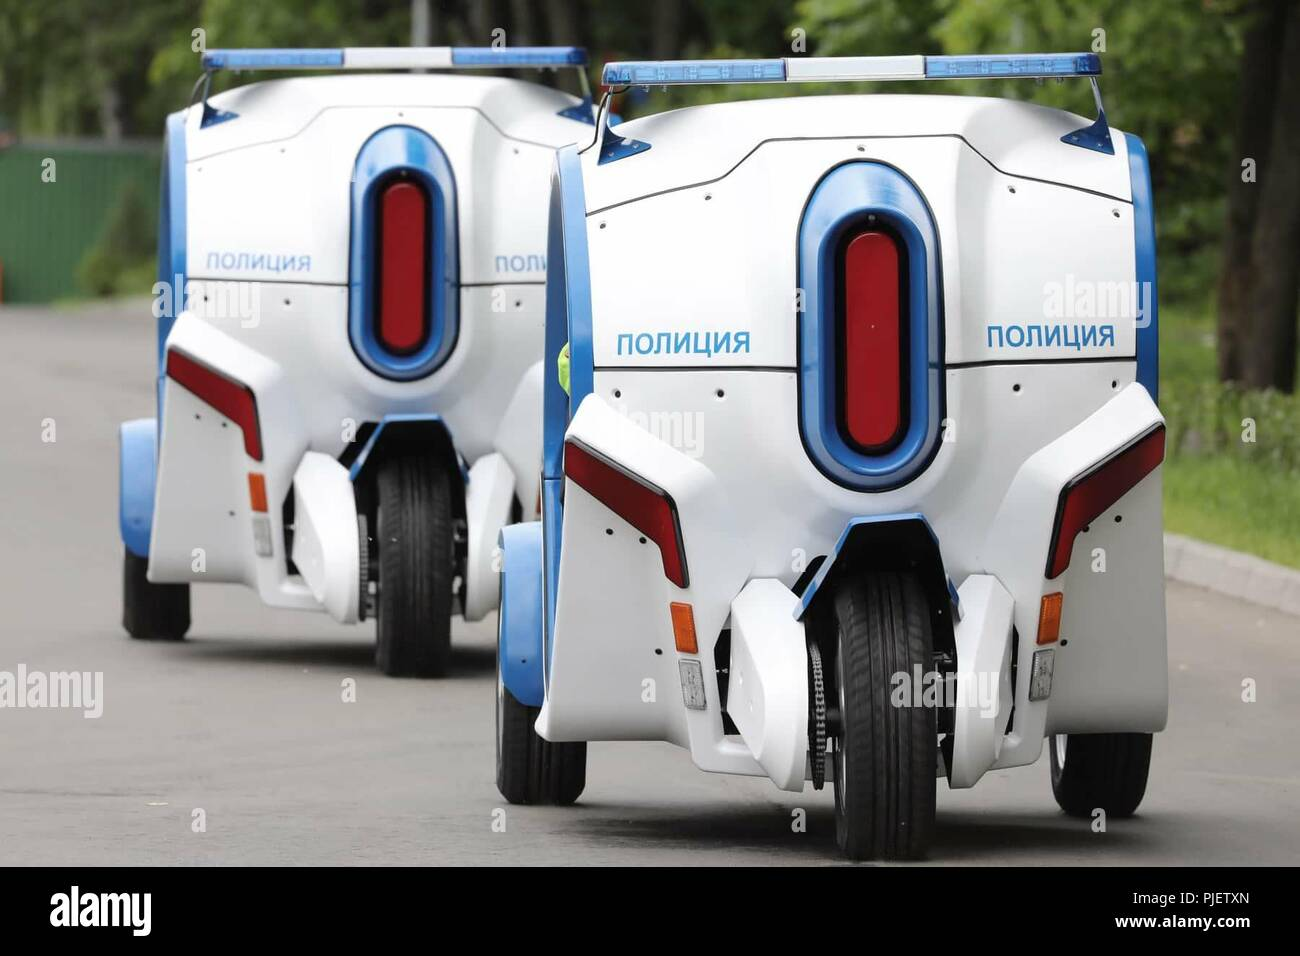 Moscow, Russia. 6th Sep, 2018. Electrocar Ovum for the Moscow police by Concern Kalashnikov, Russia. Mandatory credit: Kalashnikov Media Credit: Kalashnikov Media/Russian Look/ZUMA Wire/Alamy Live News - Stock Image